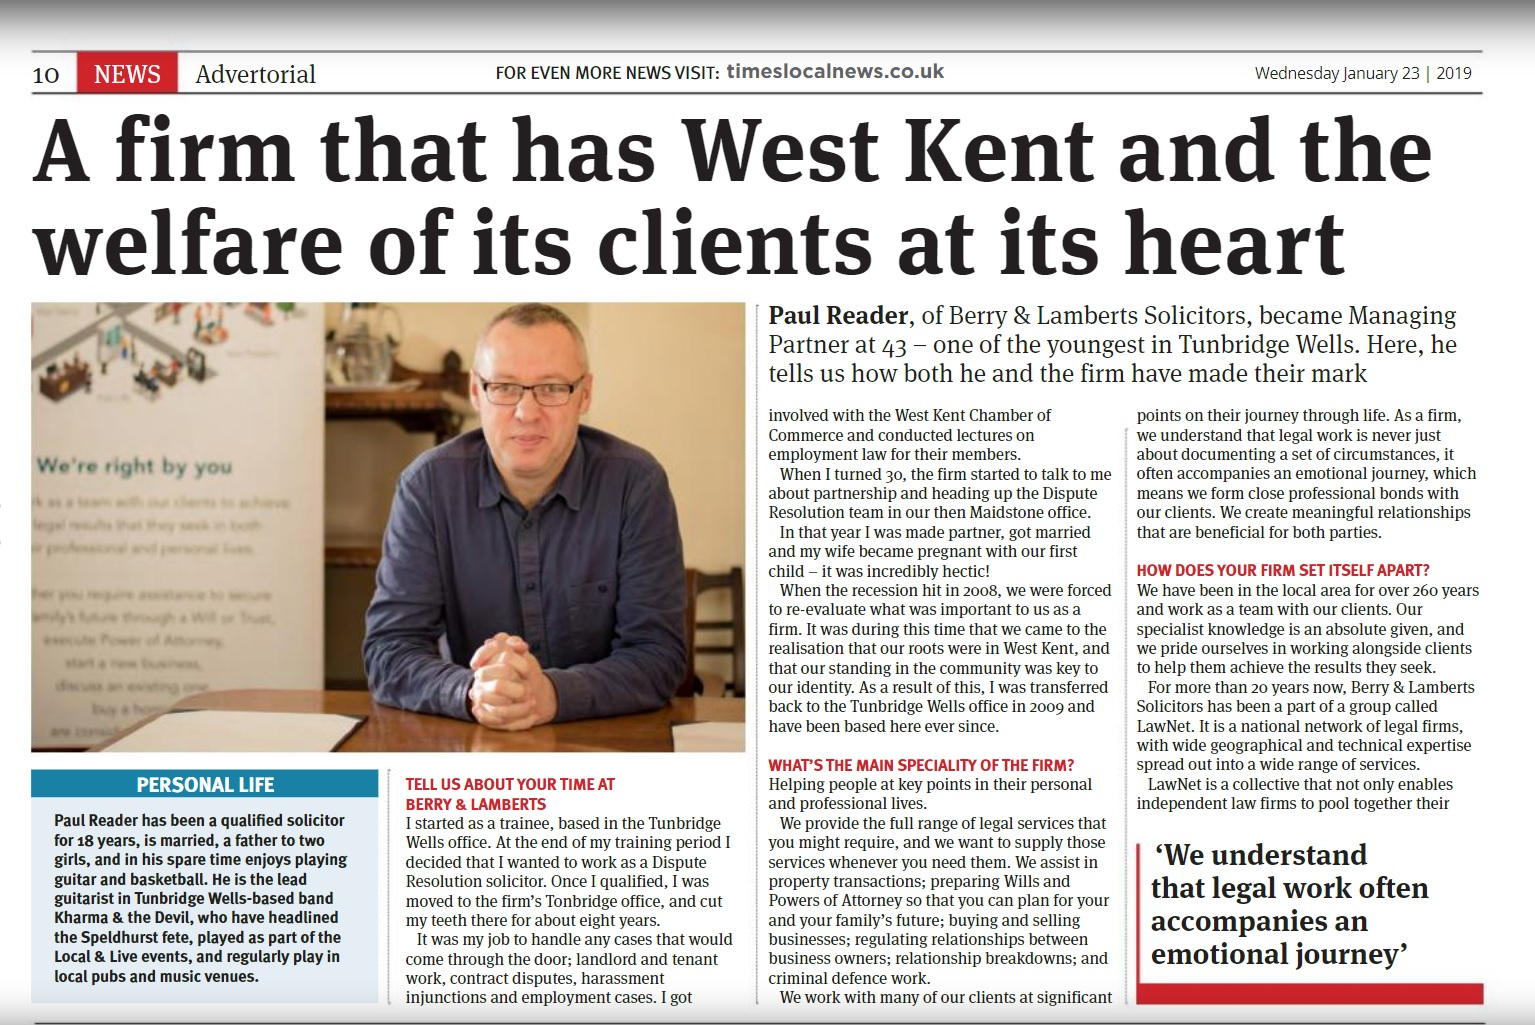 A firm that has West Kent at its heart